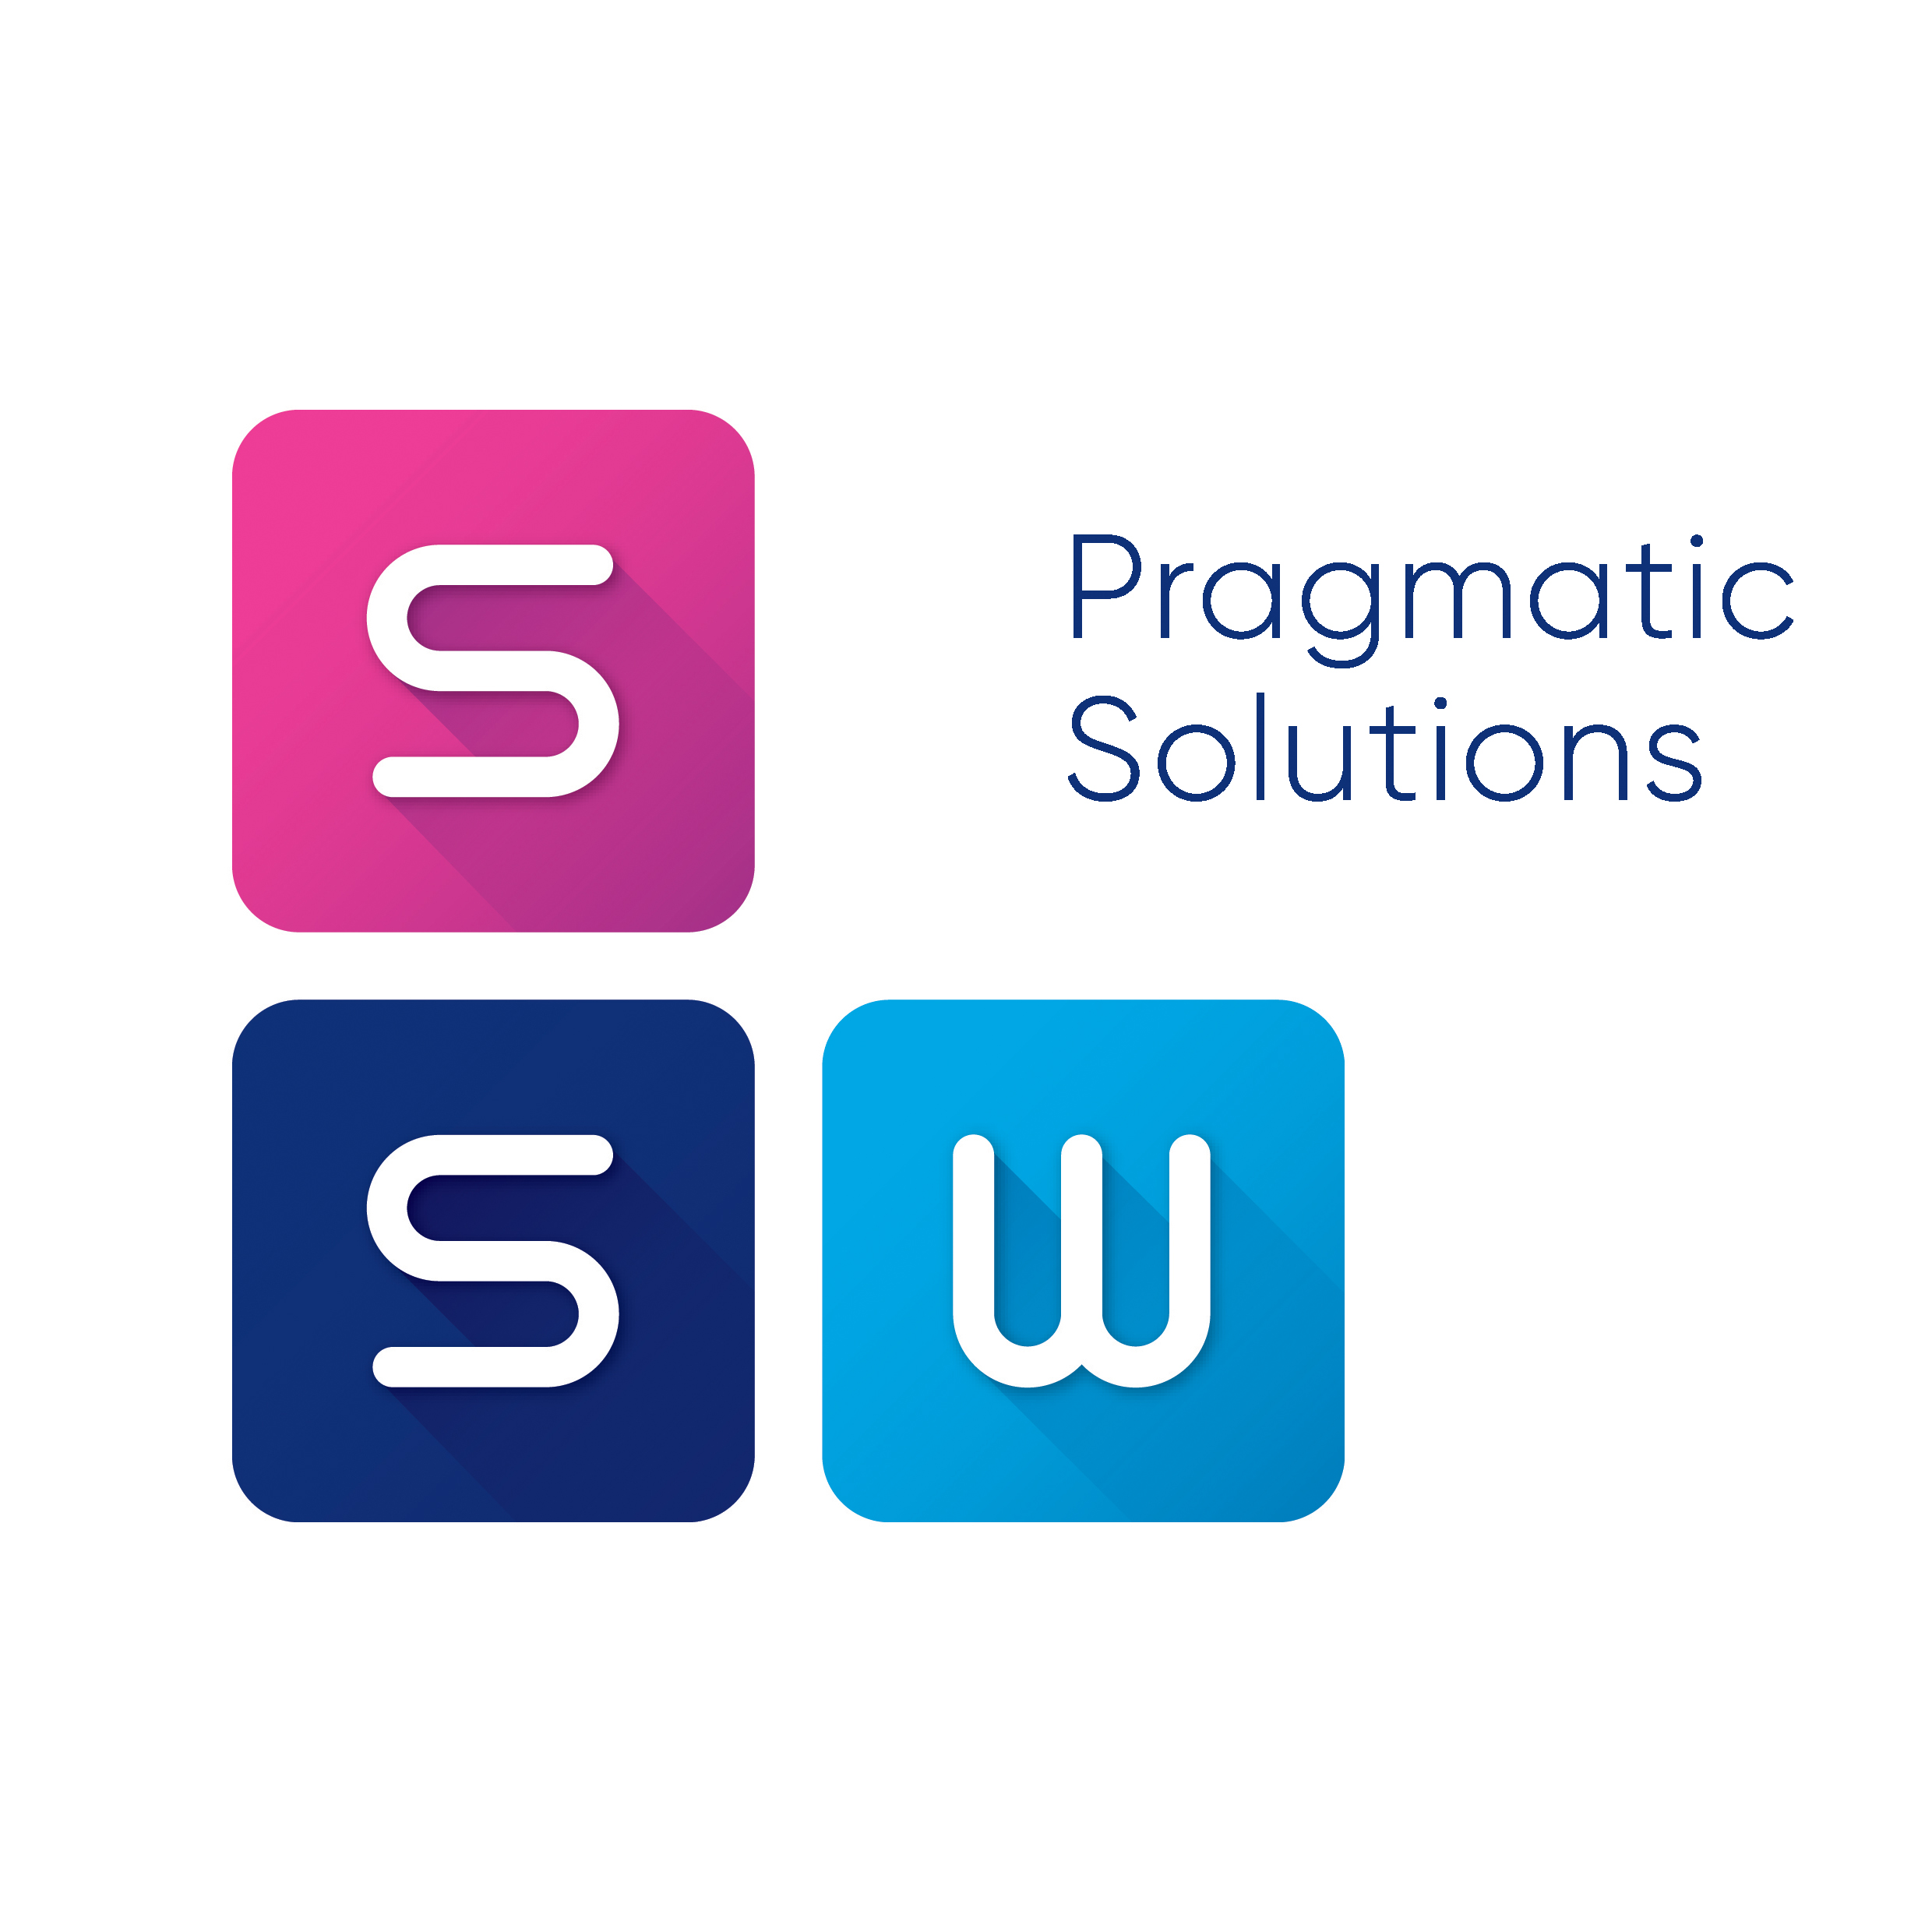 SSW Pragmatic Solutions logo